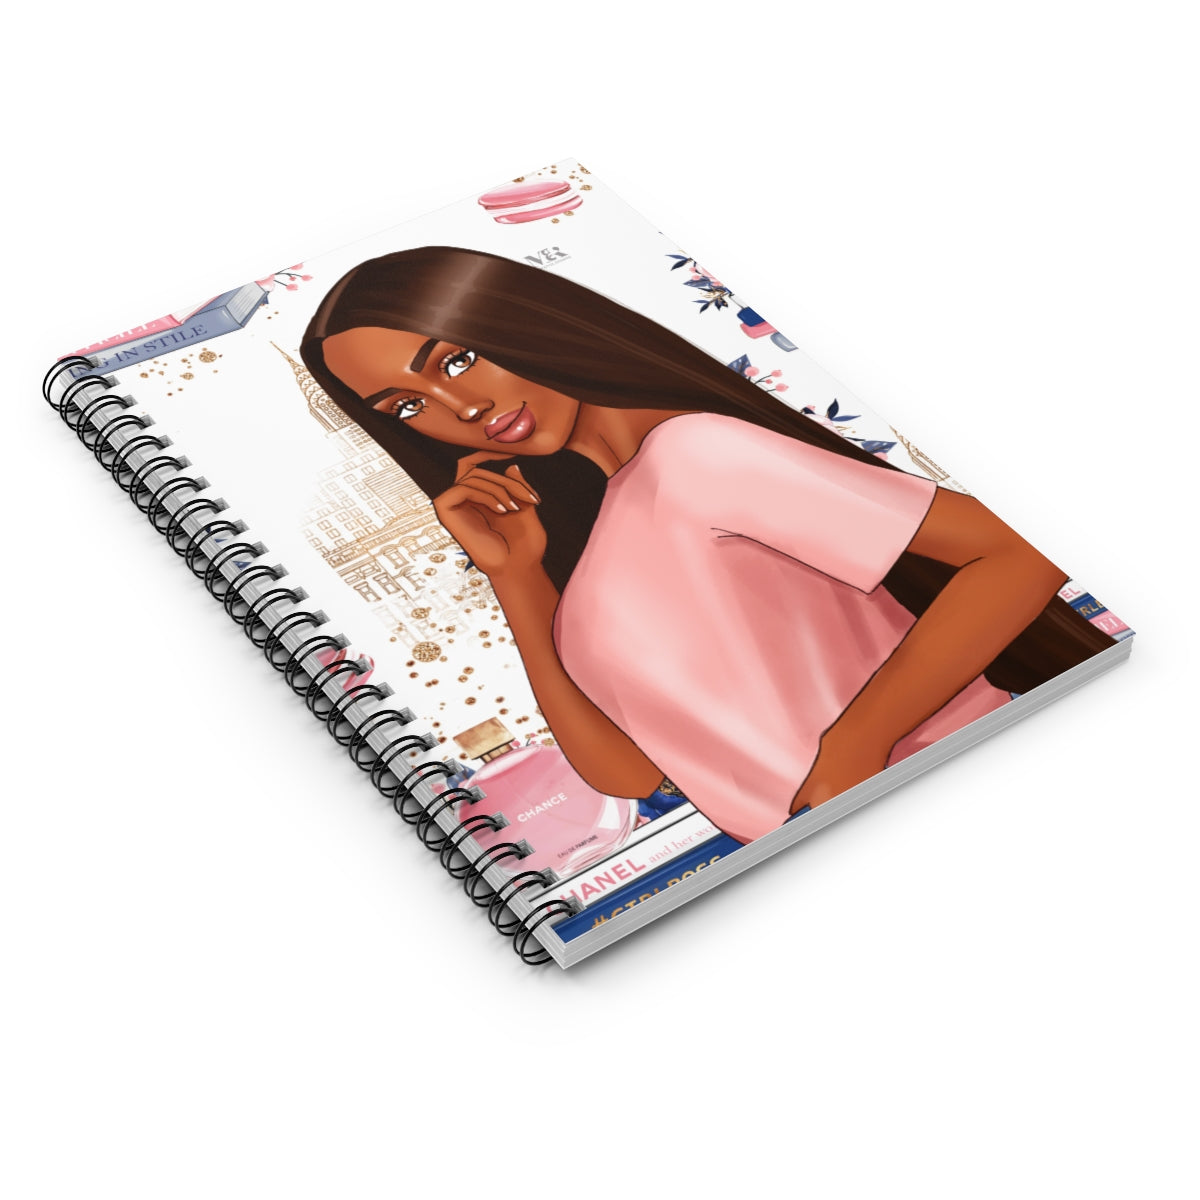 Black Woman In Pink Journal